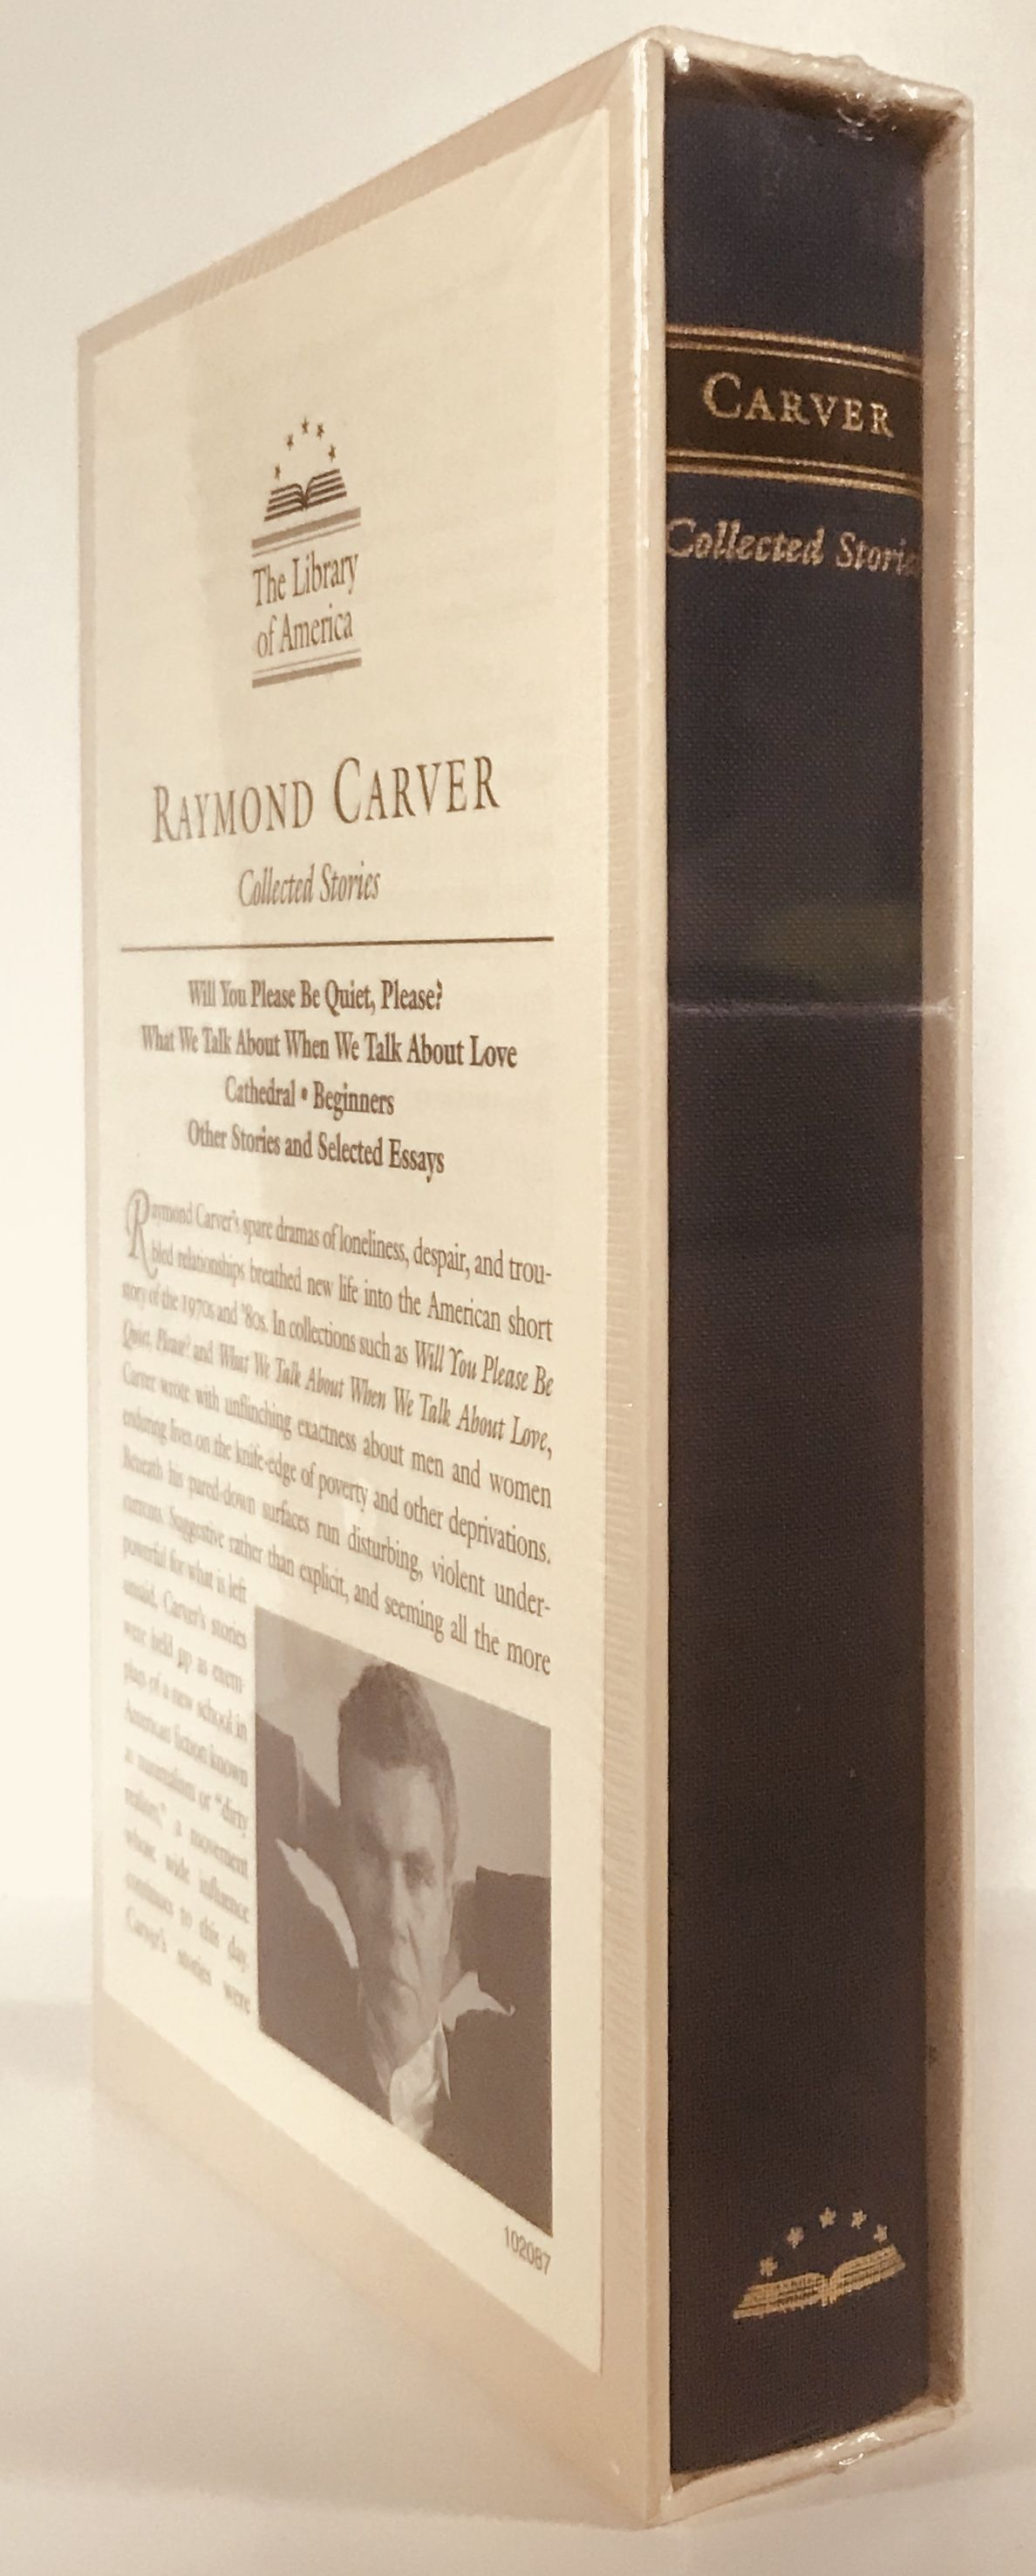 Raymond Carver: Collected Stories (Library of America), Carver, Raymond